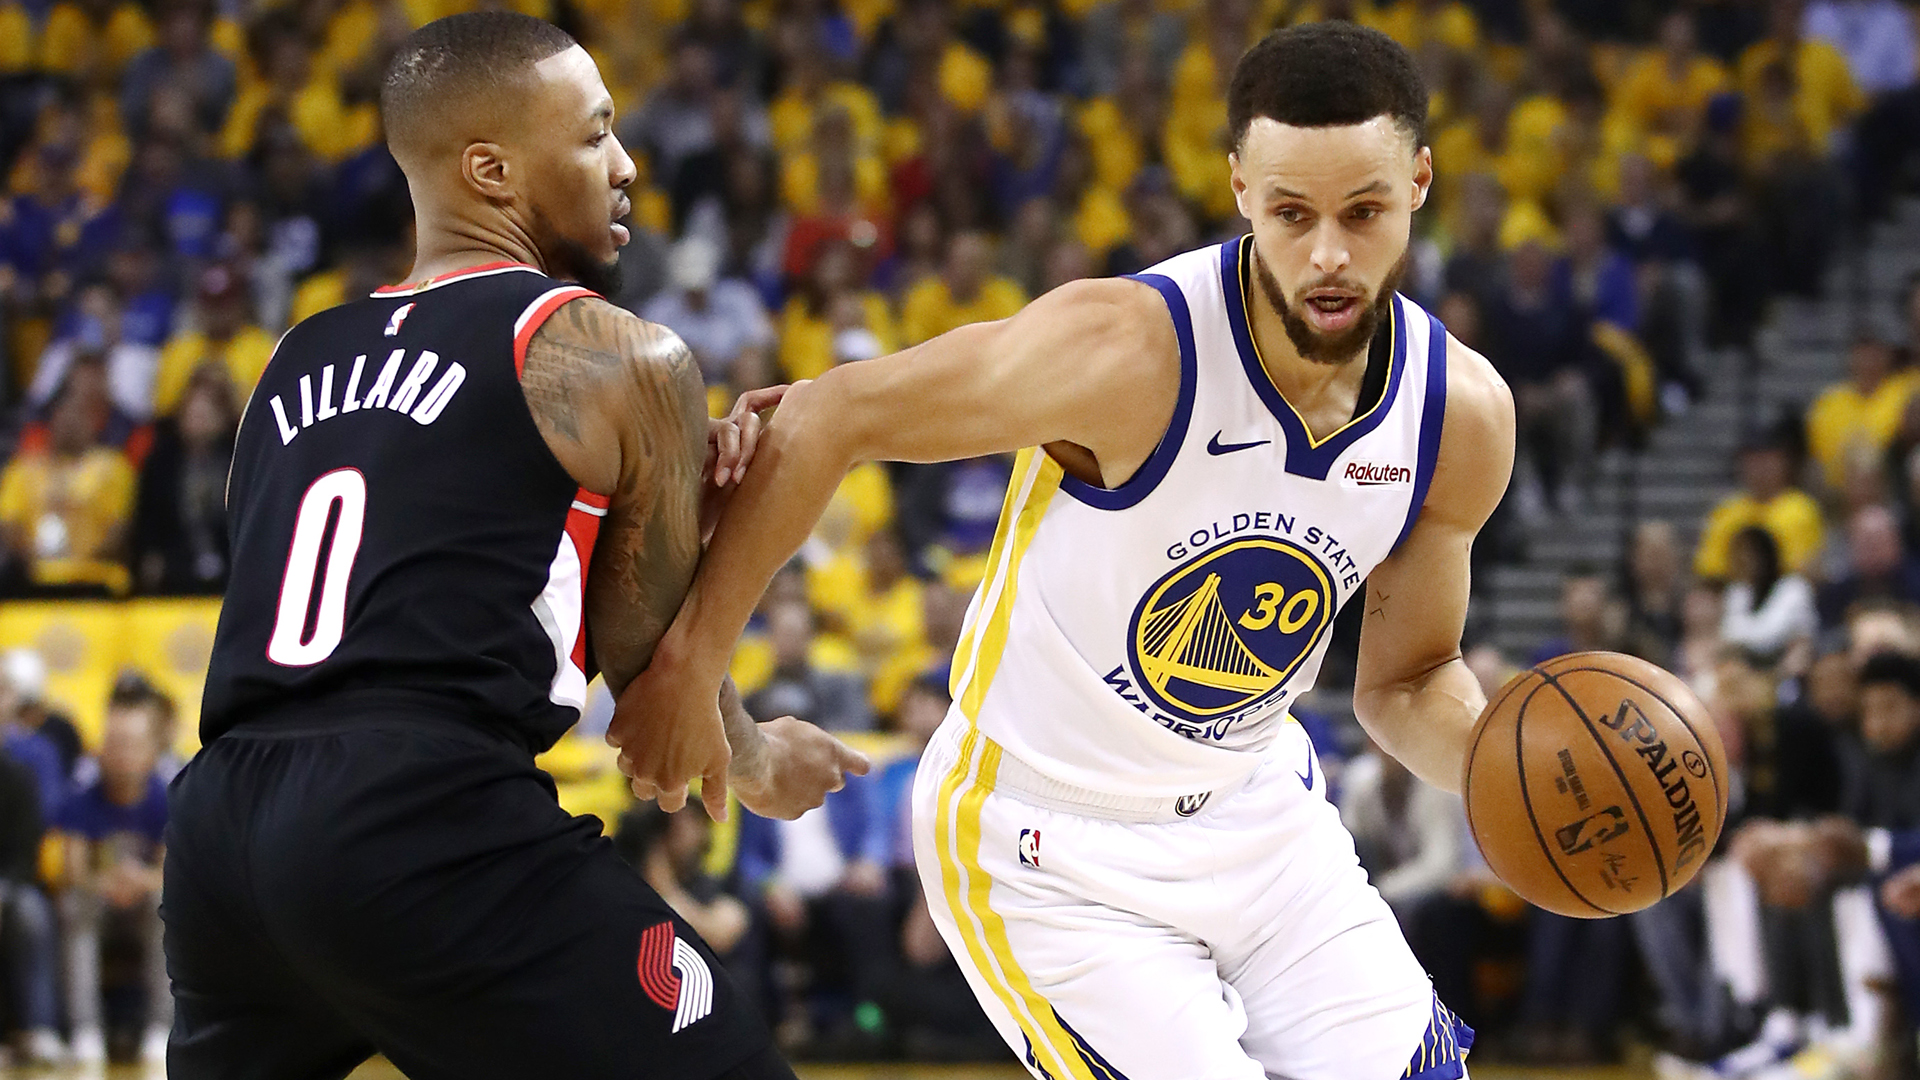 The Portland Trail Blazers must improve defensively against Stephen Curry, according to Damian Lillard.